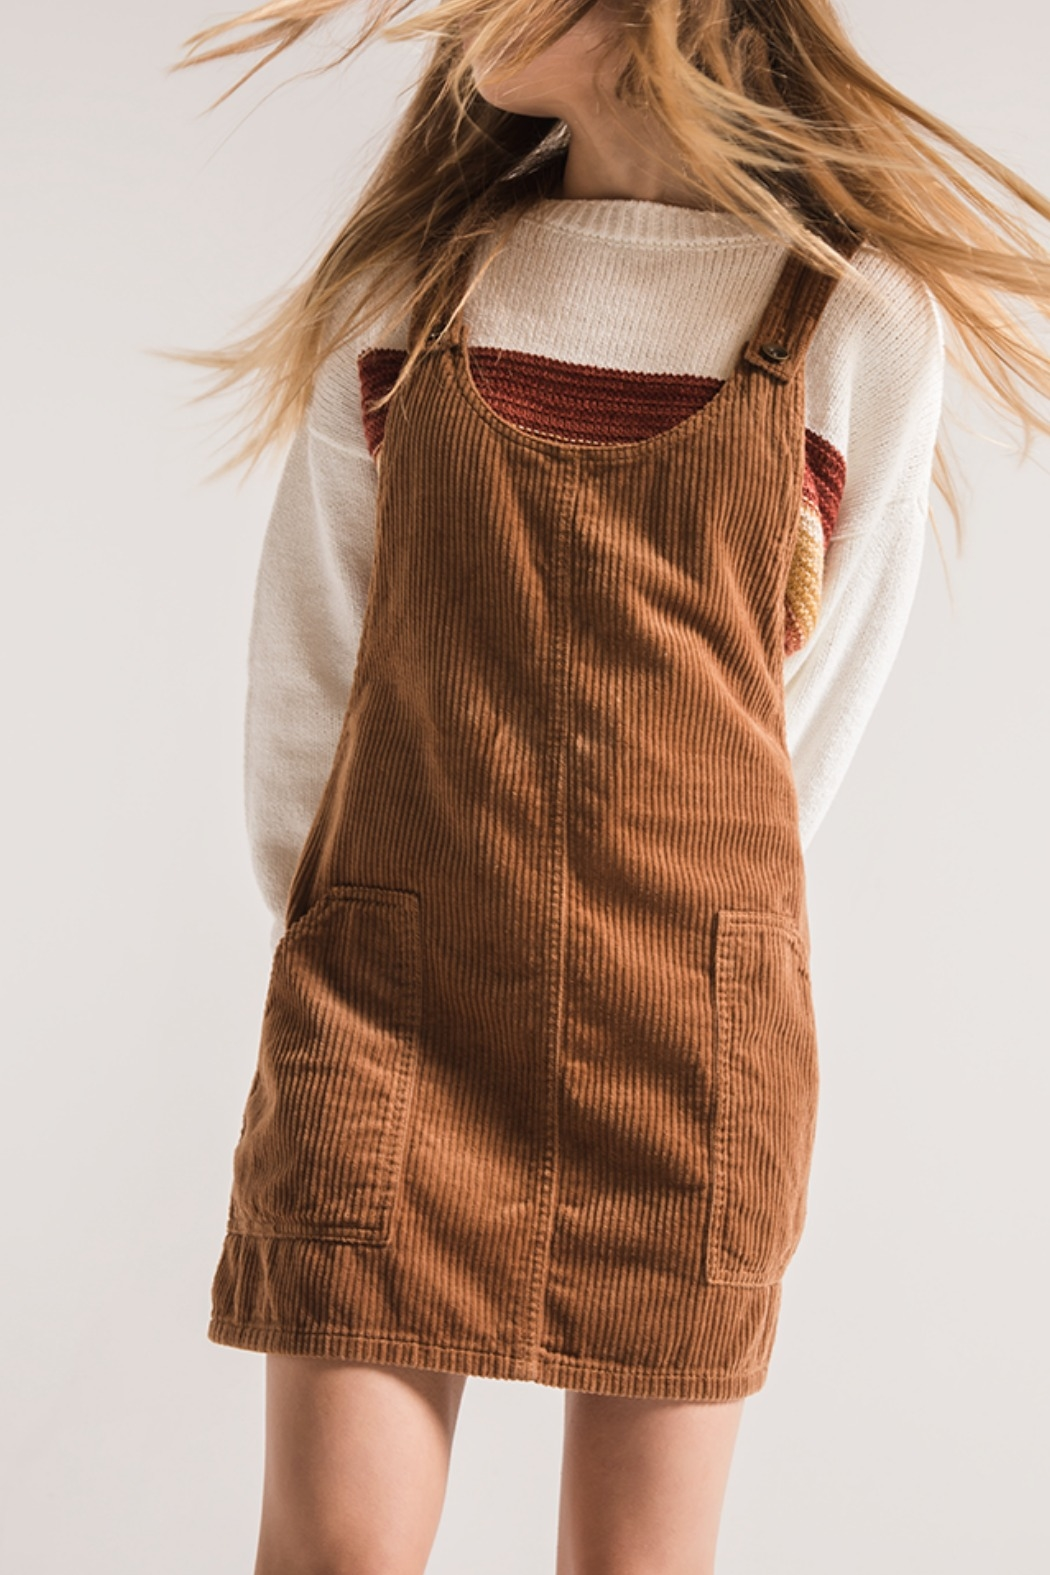 90783a489c1 Others Follow Corduroy Overall Dress from Kansas by Eccentricity ...